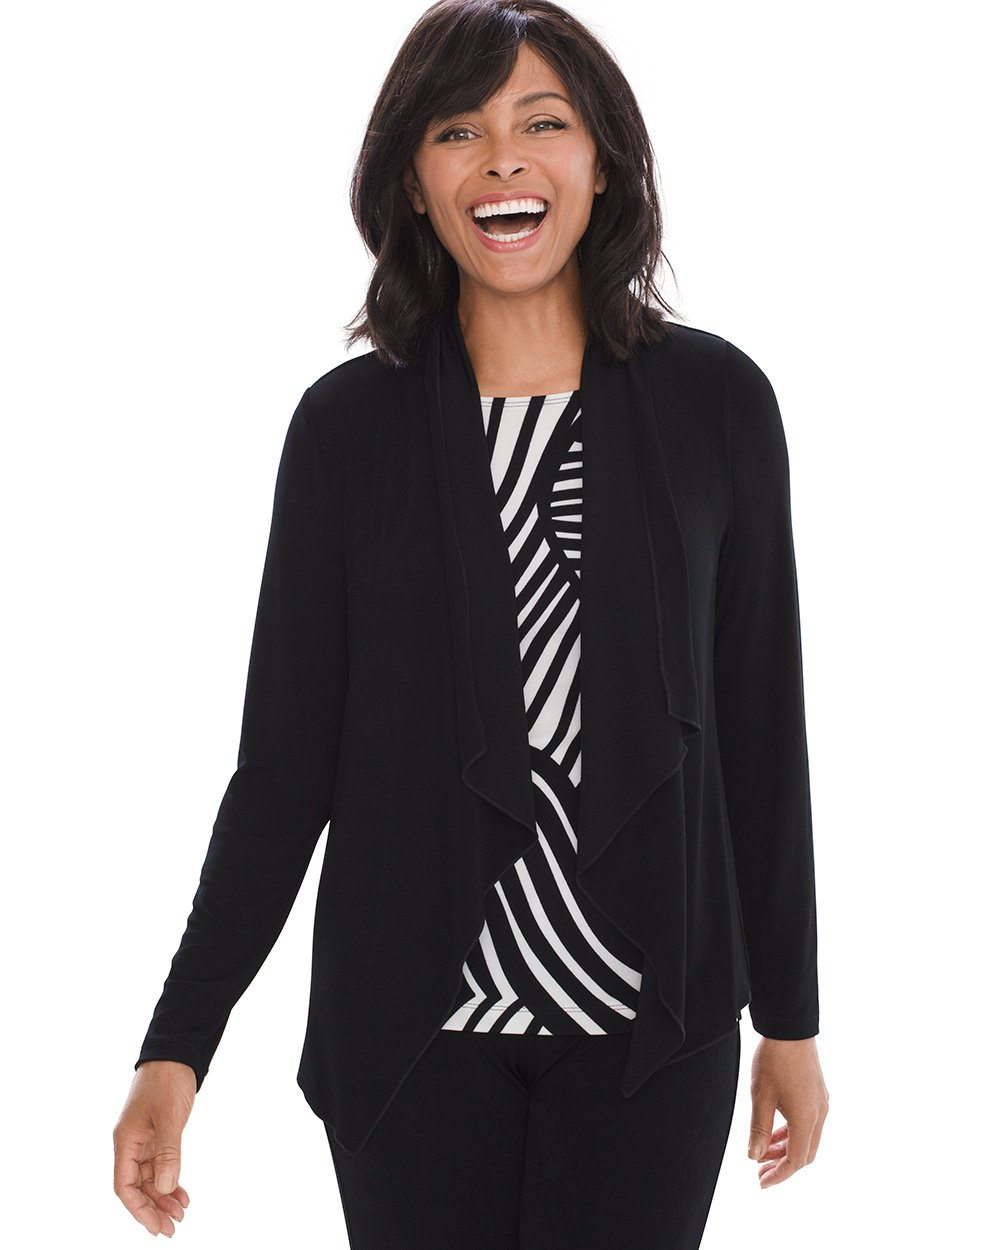 Chico's Women's Travelers Classic Easy Drape Jacket Size 8/10 M (1) Black by Chico's (Image #1)